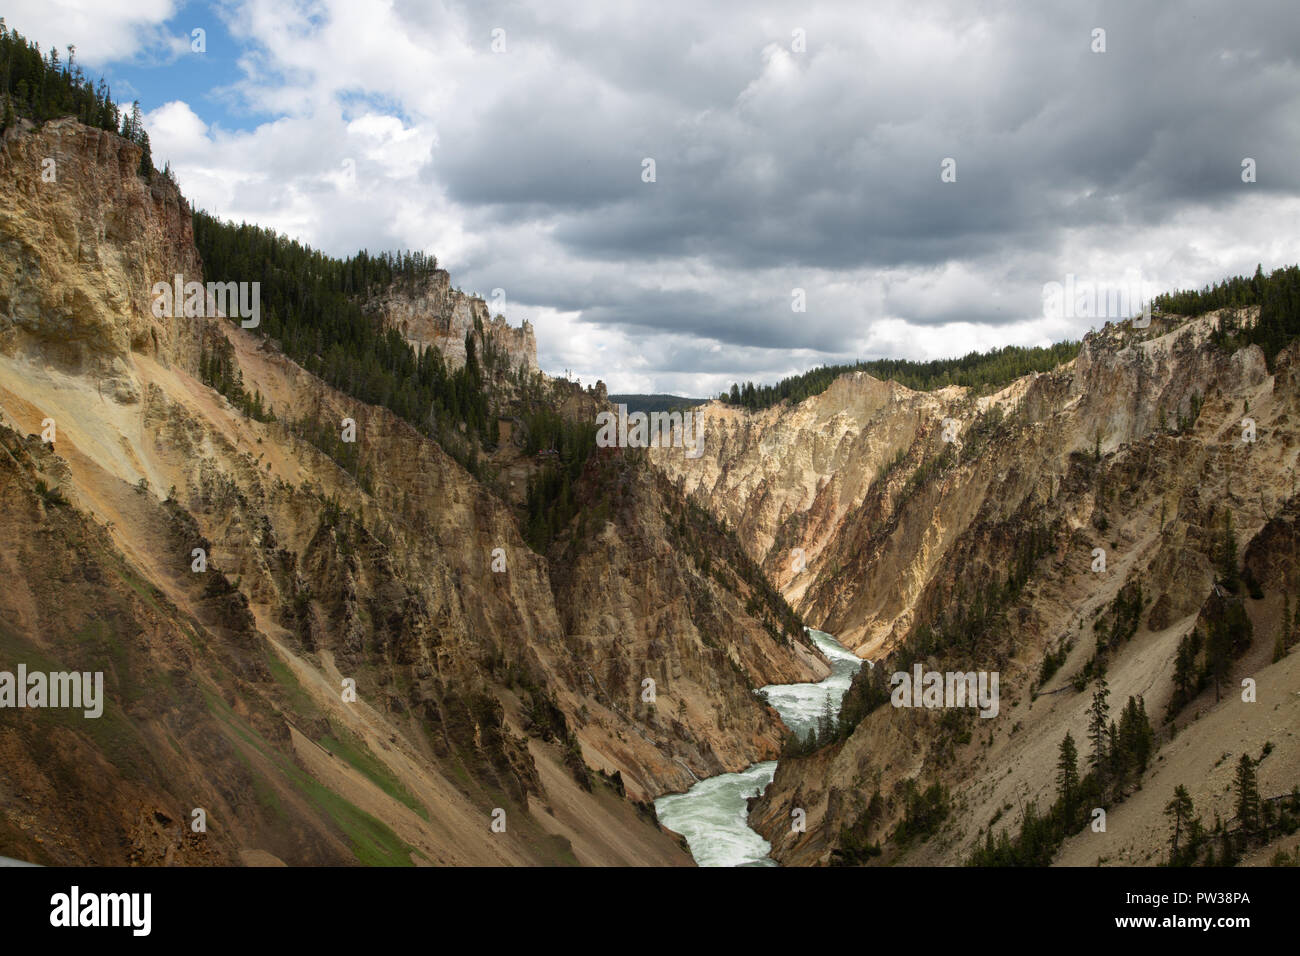 Grand Canyon of Yellowstone - Stock Image